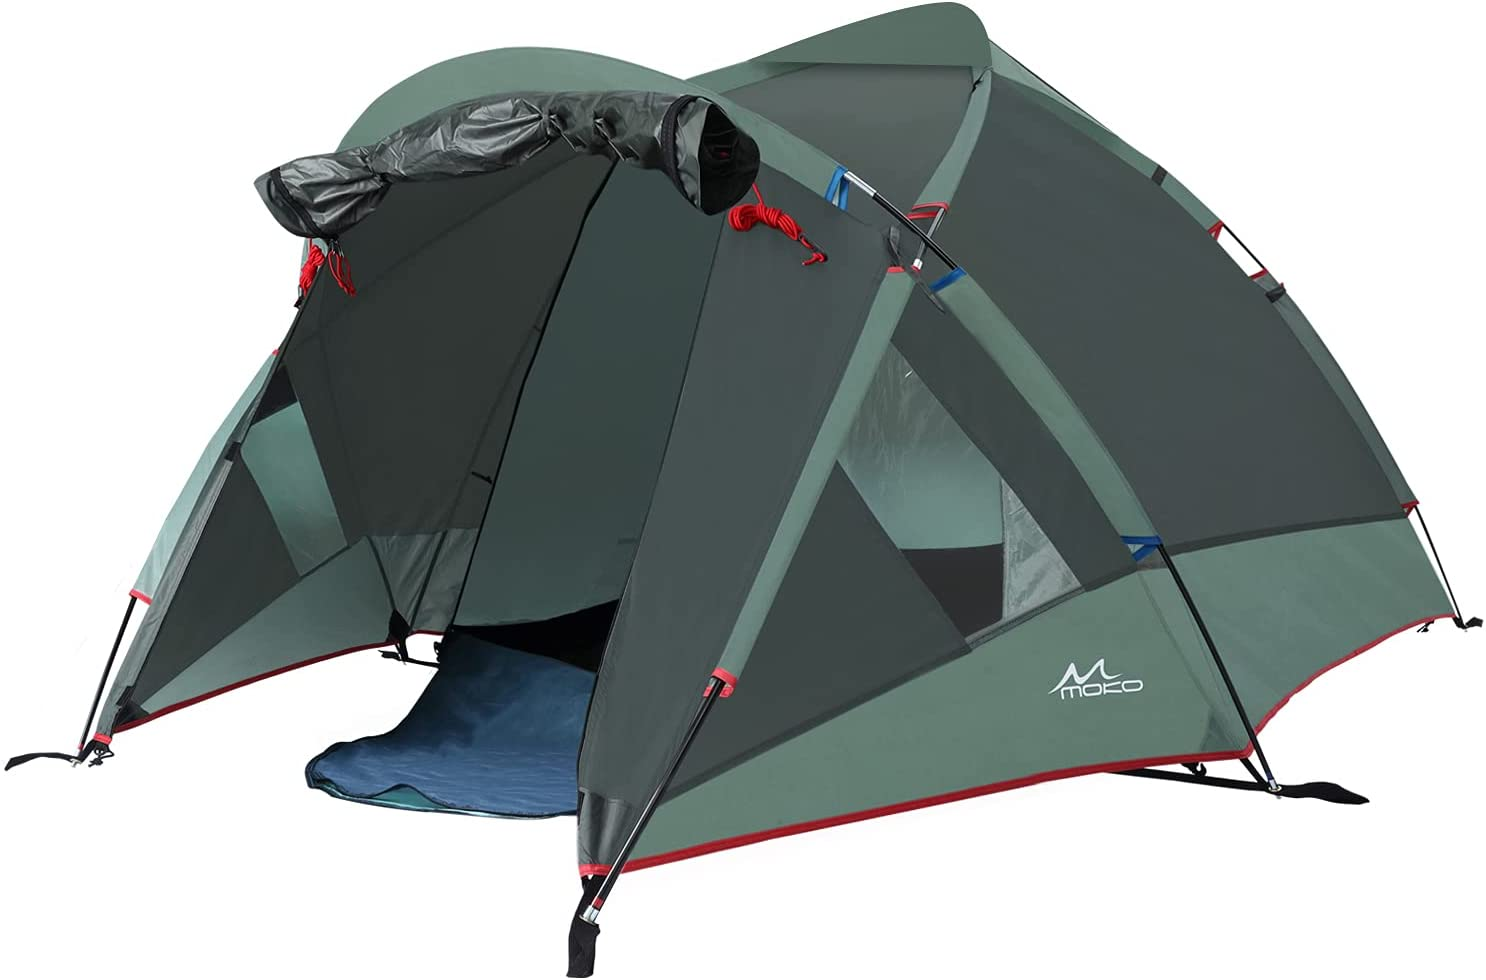 MOKO FAMILY TENT  BEST FAMILY TENTS FOR BAD WEATHER